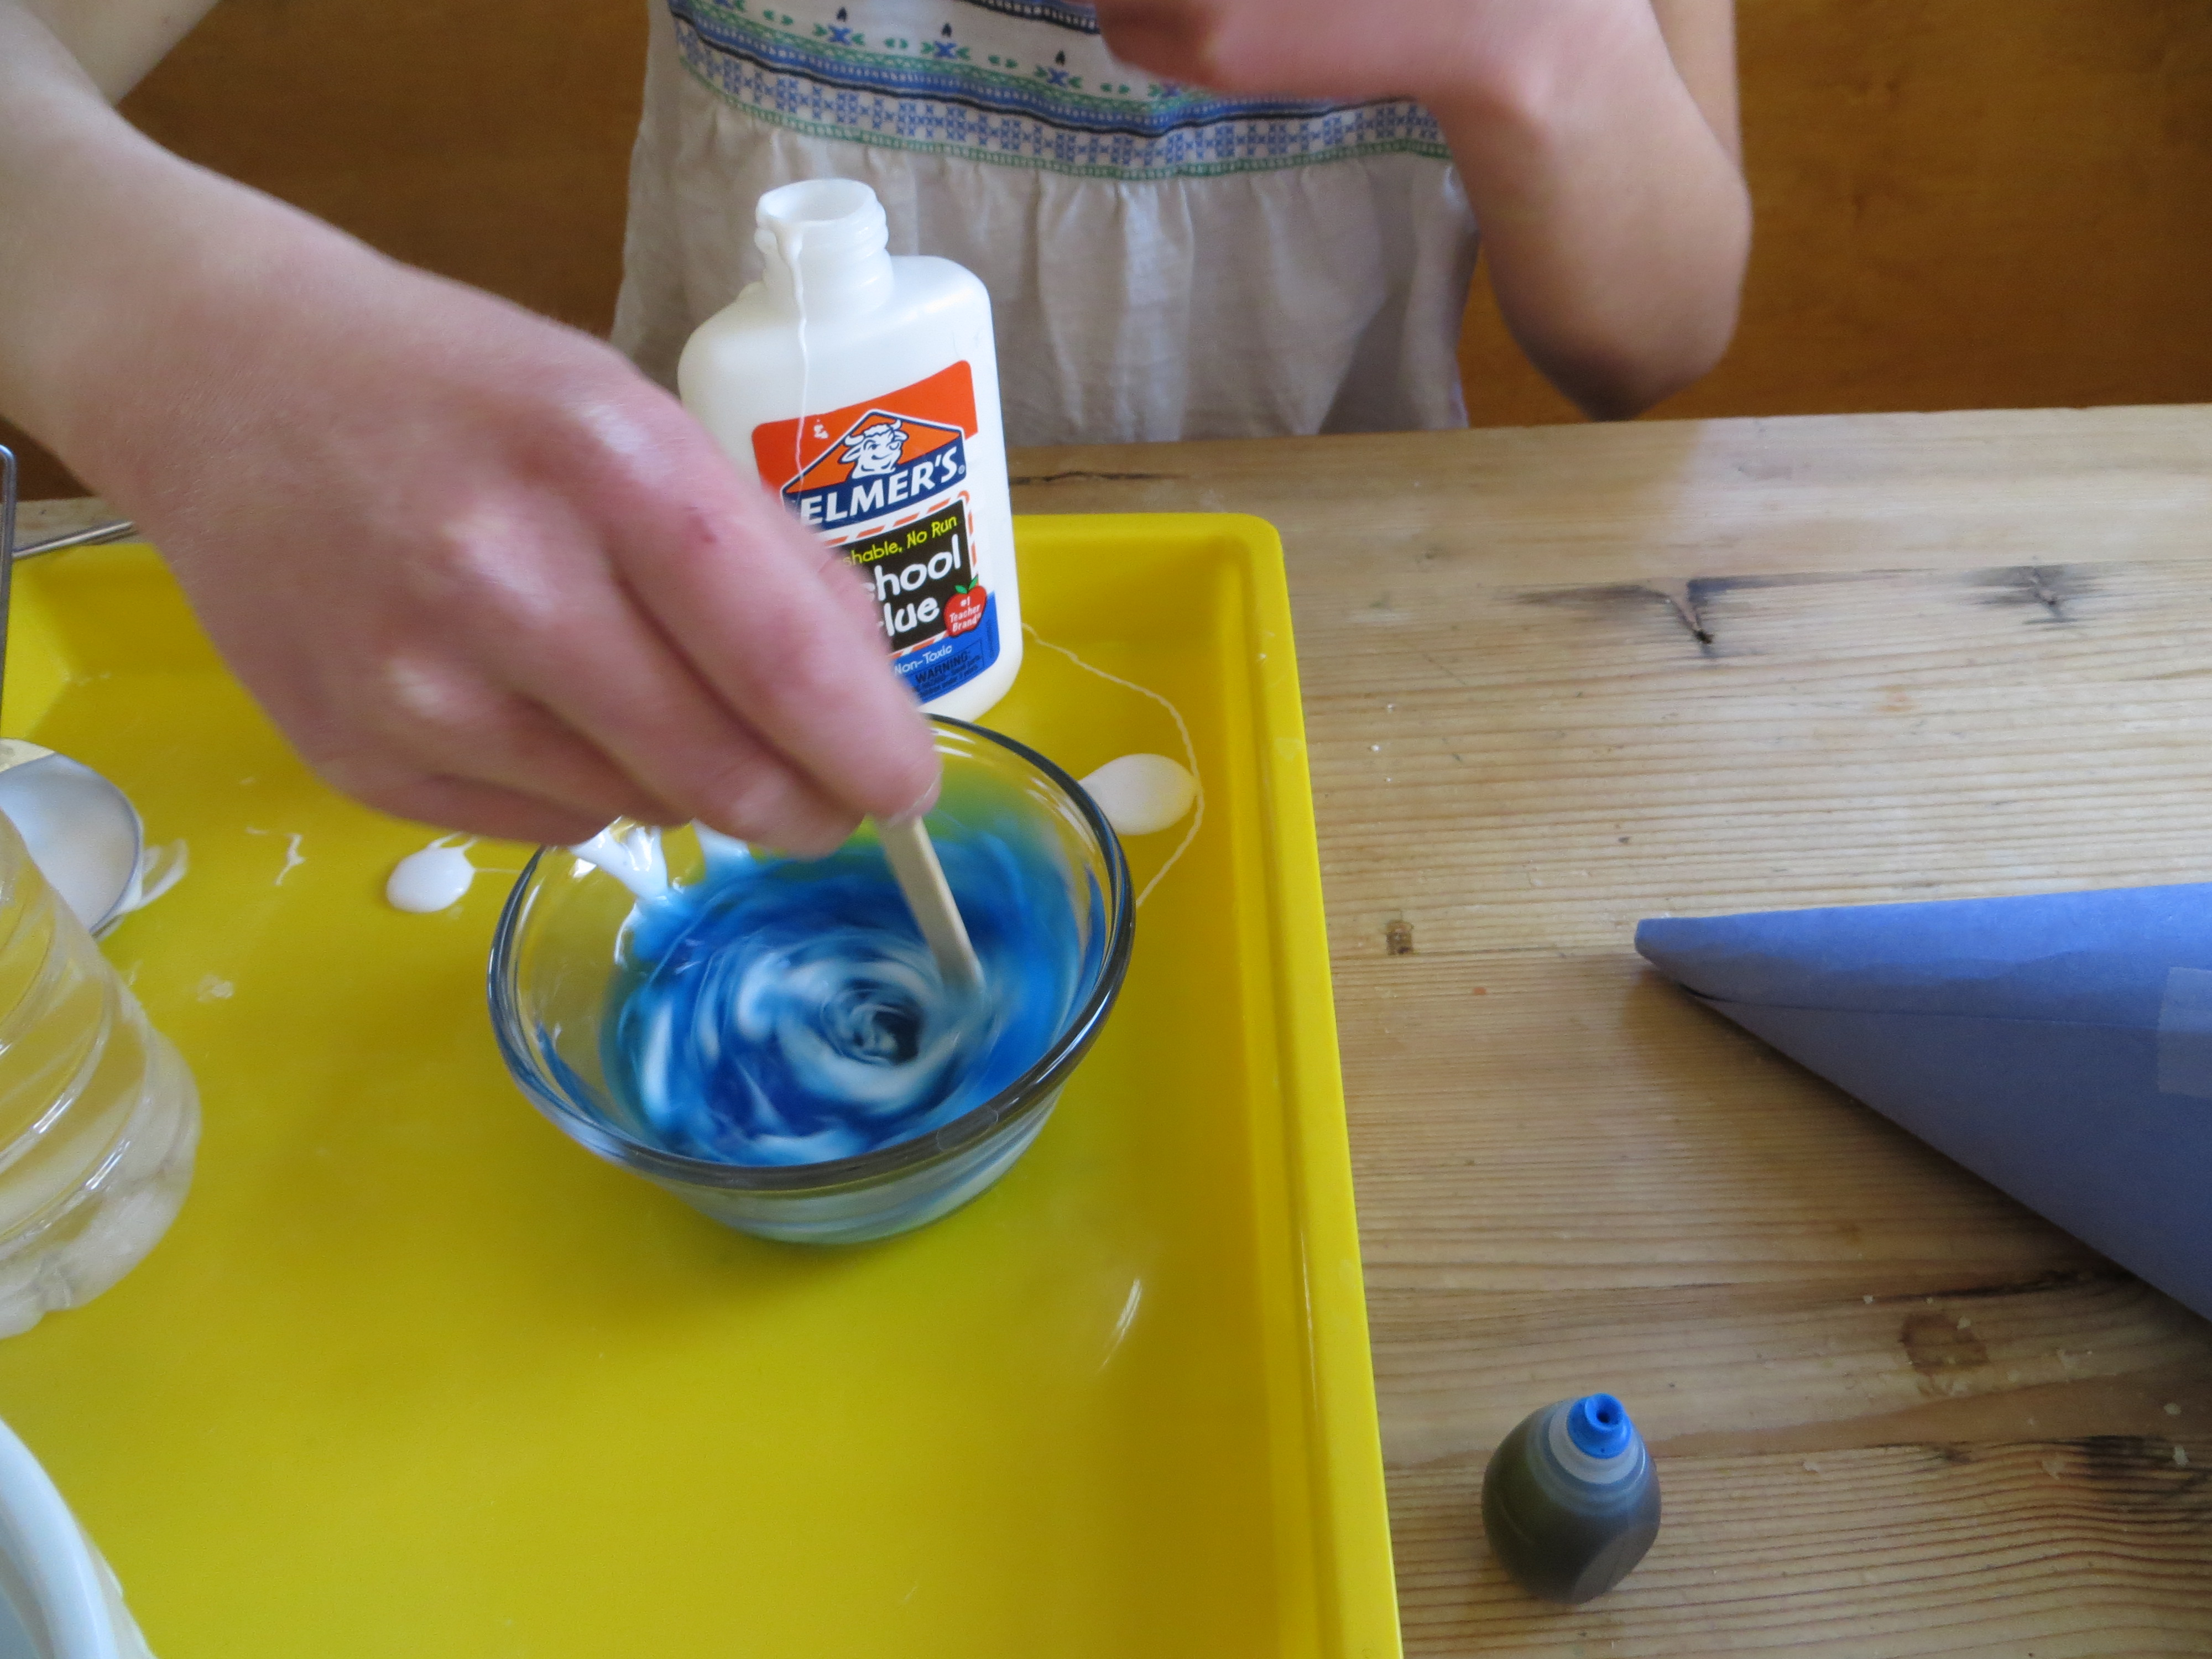 Slime recipe with laundry detergent glue and baking soda